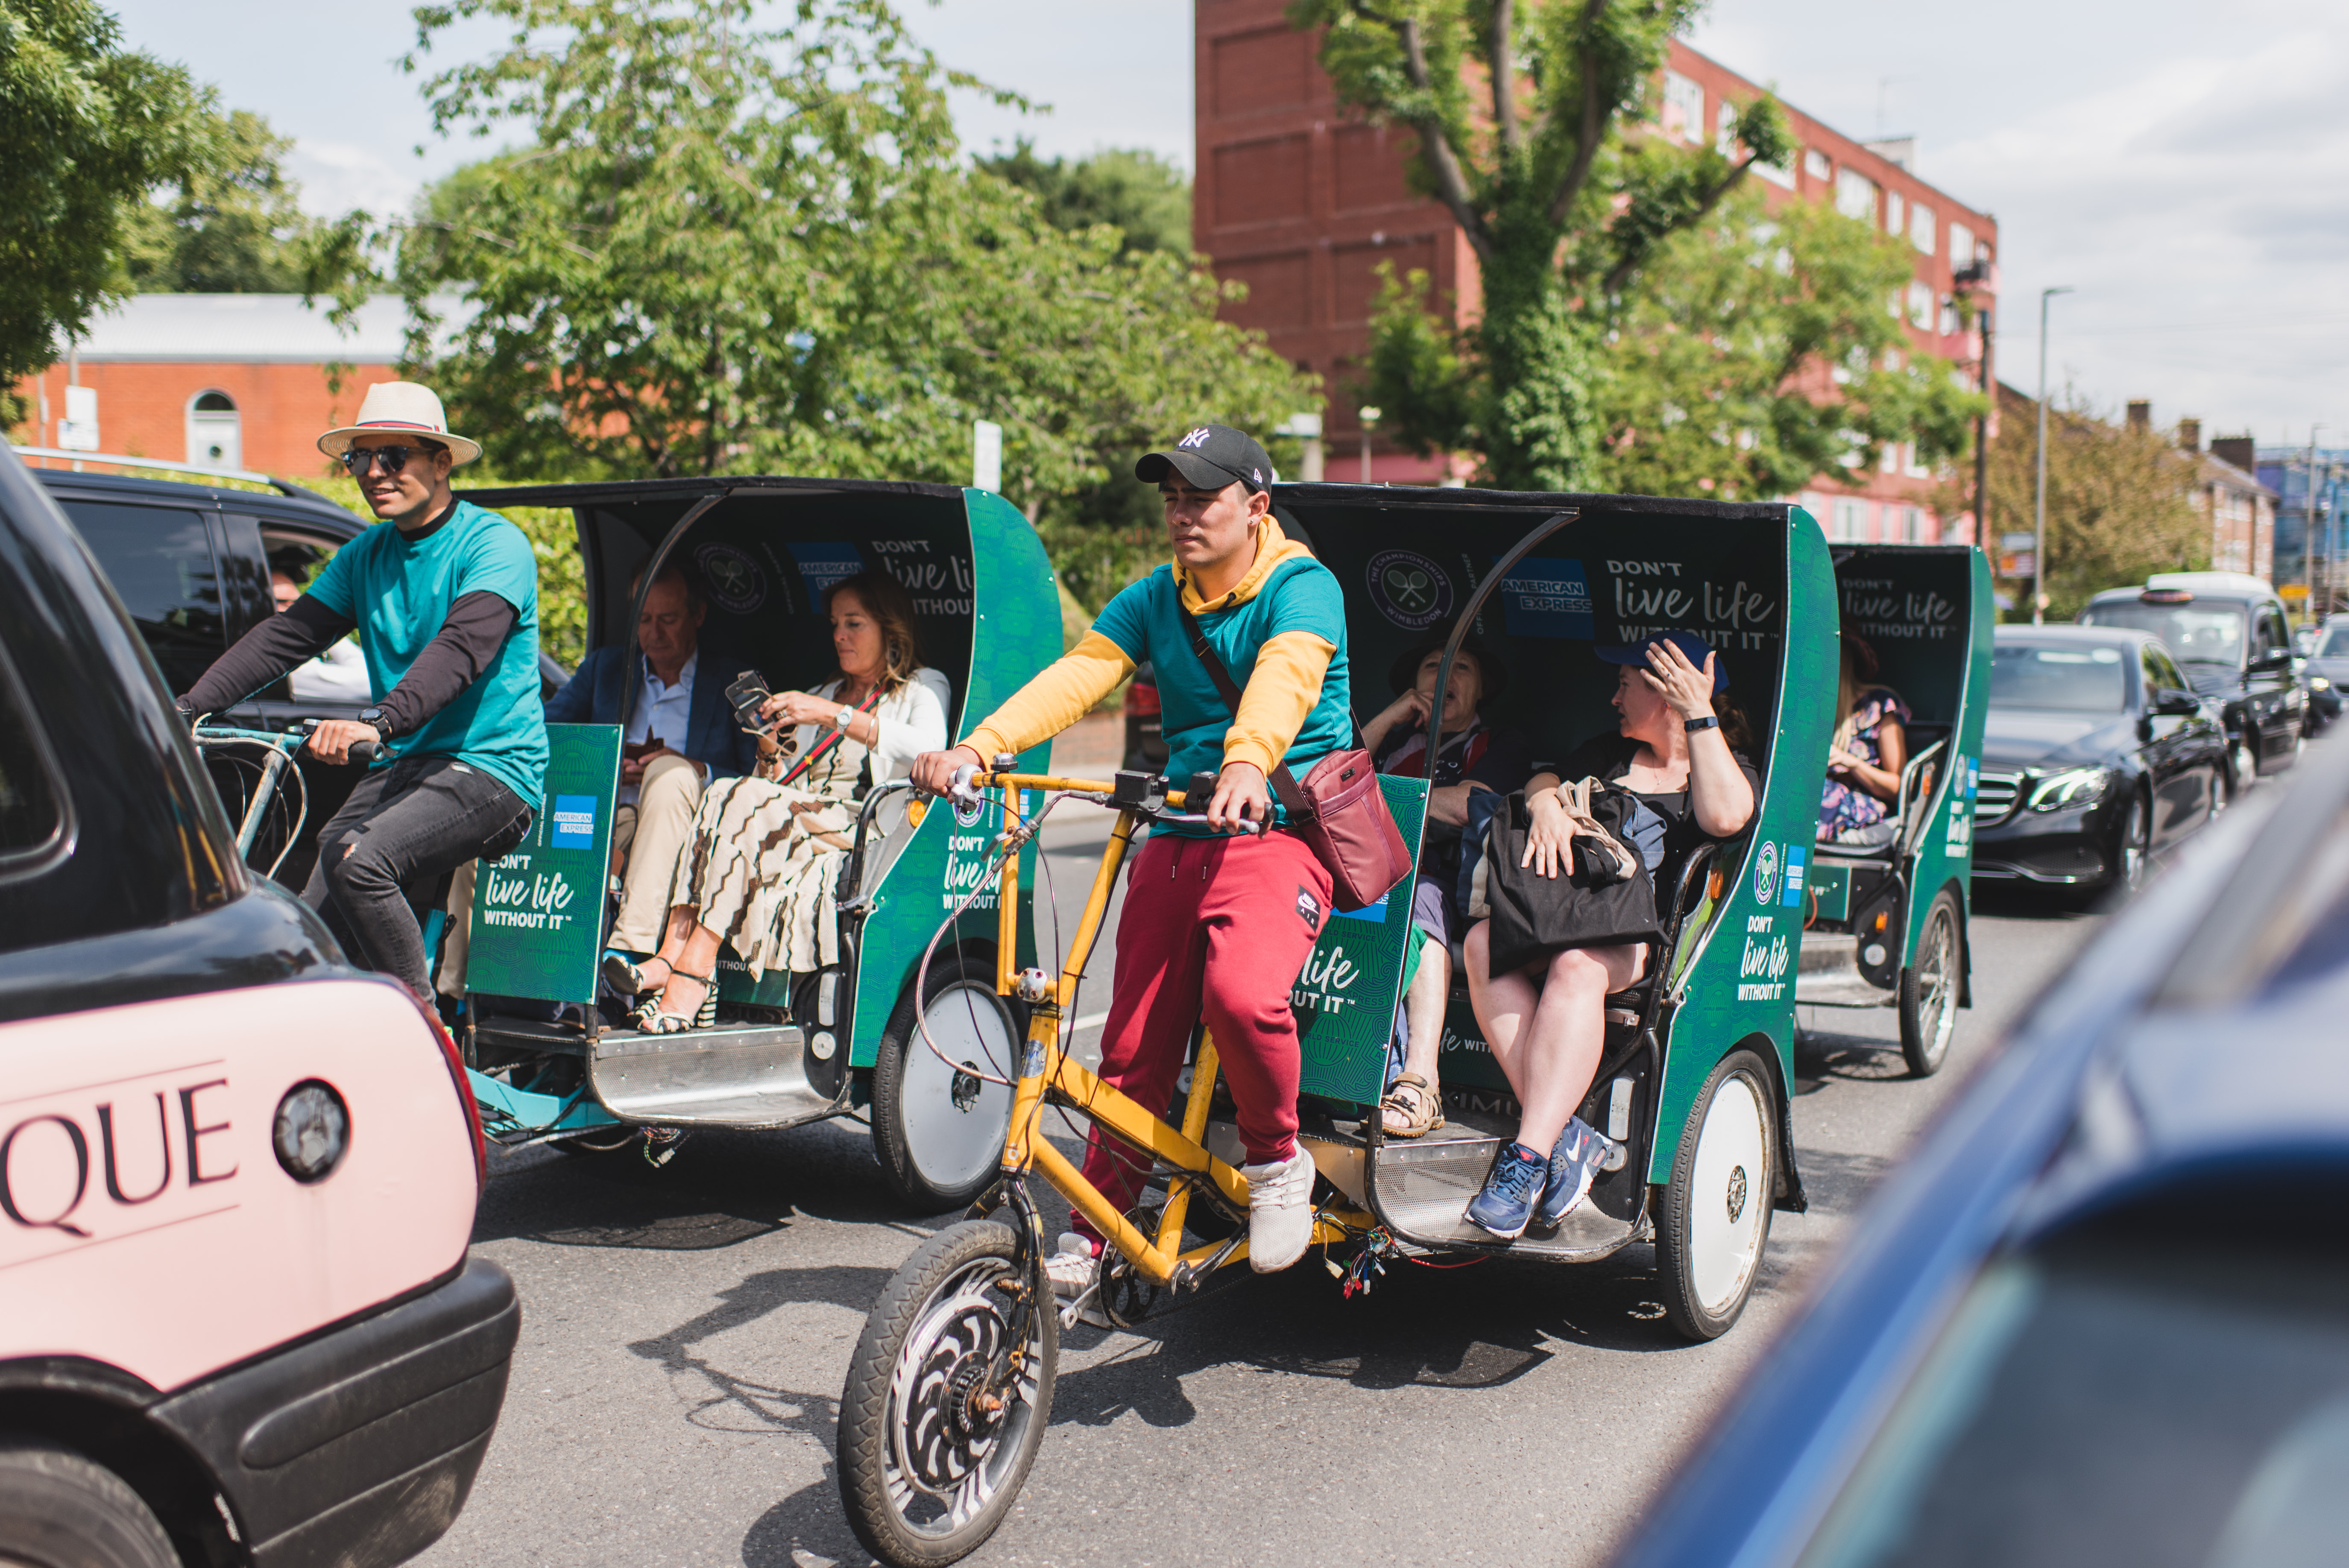 American Express pedal cabs transporting people to Wimbledon